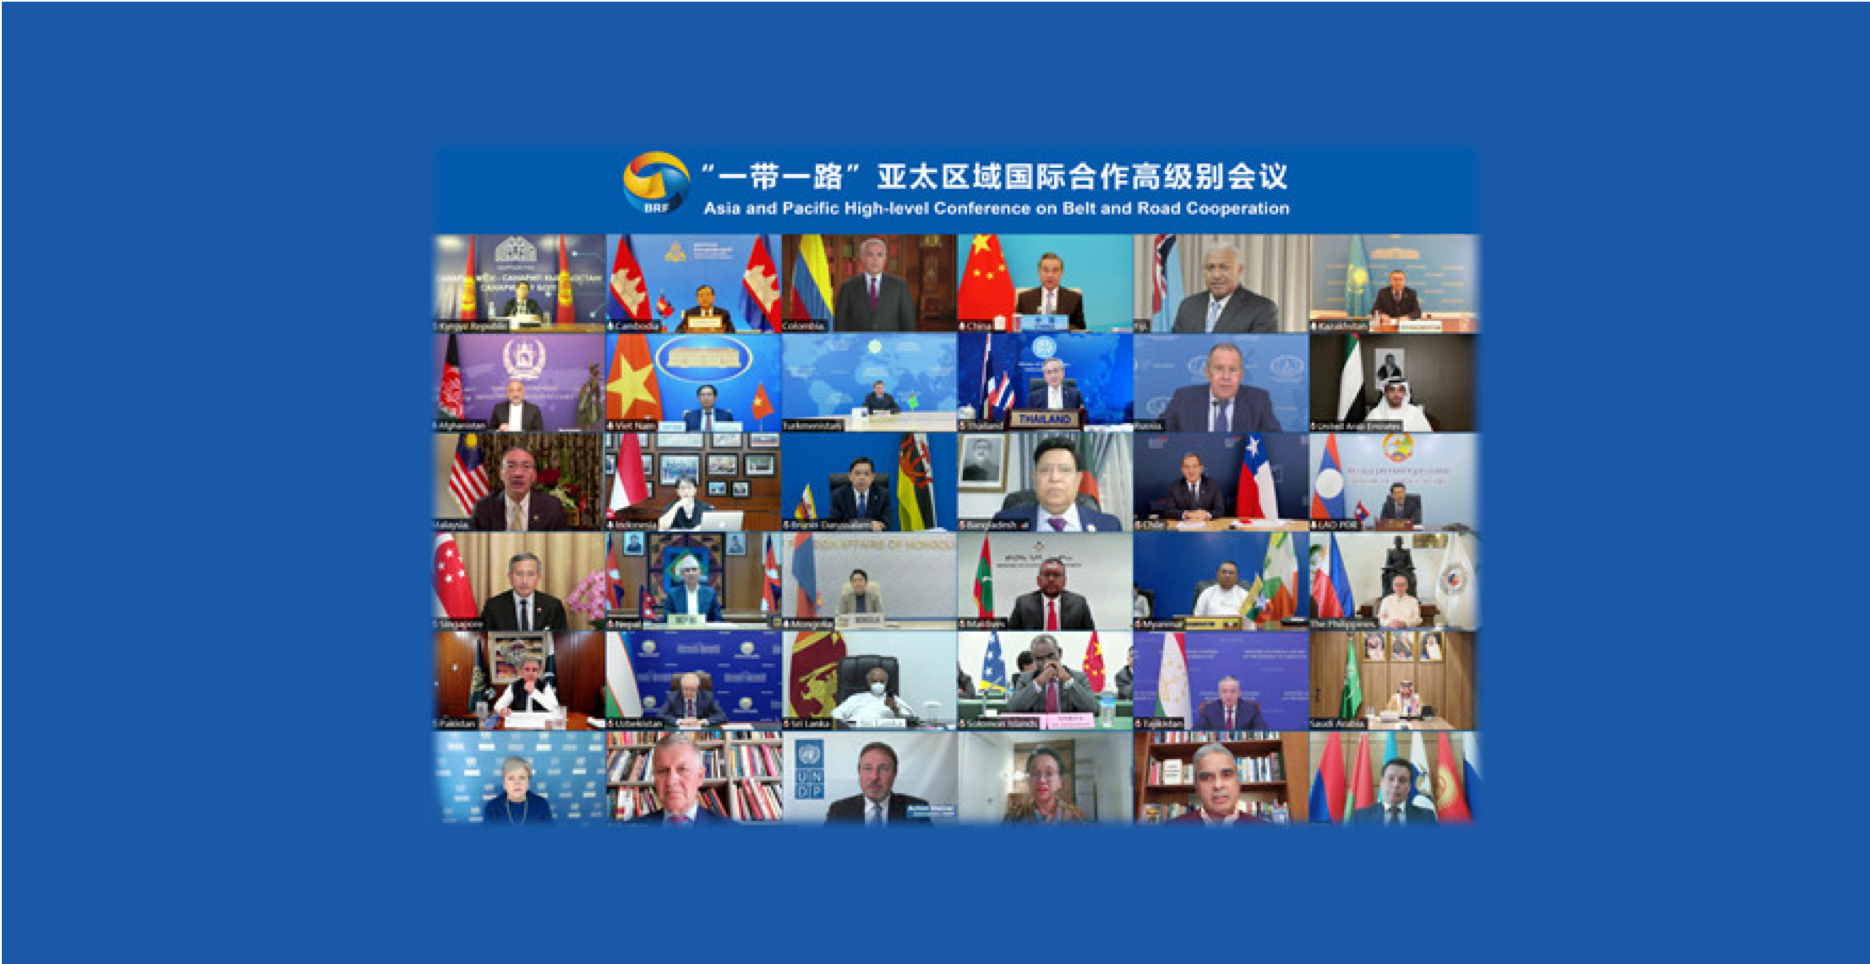 Asia and Pacific High-level Video Conference on Belt and Road Cooperation